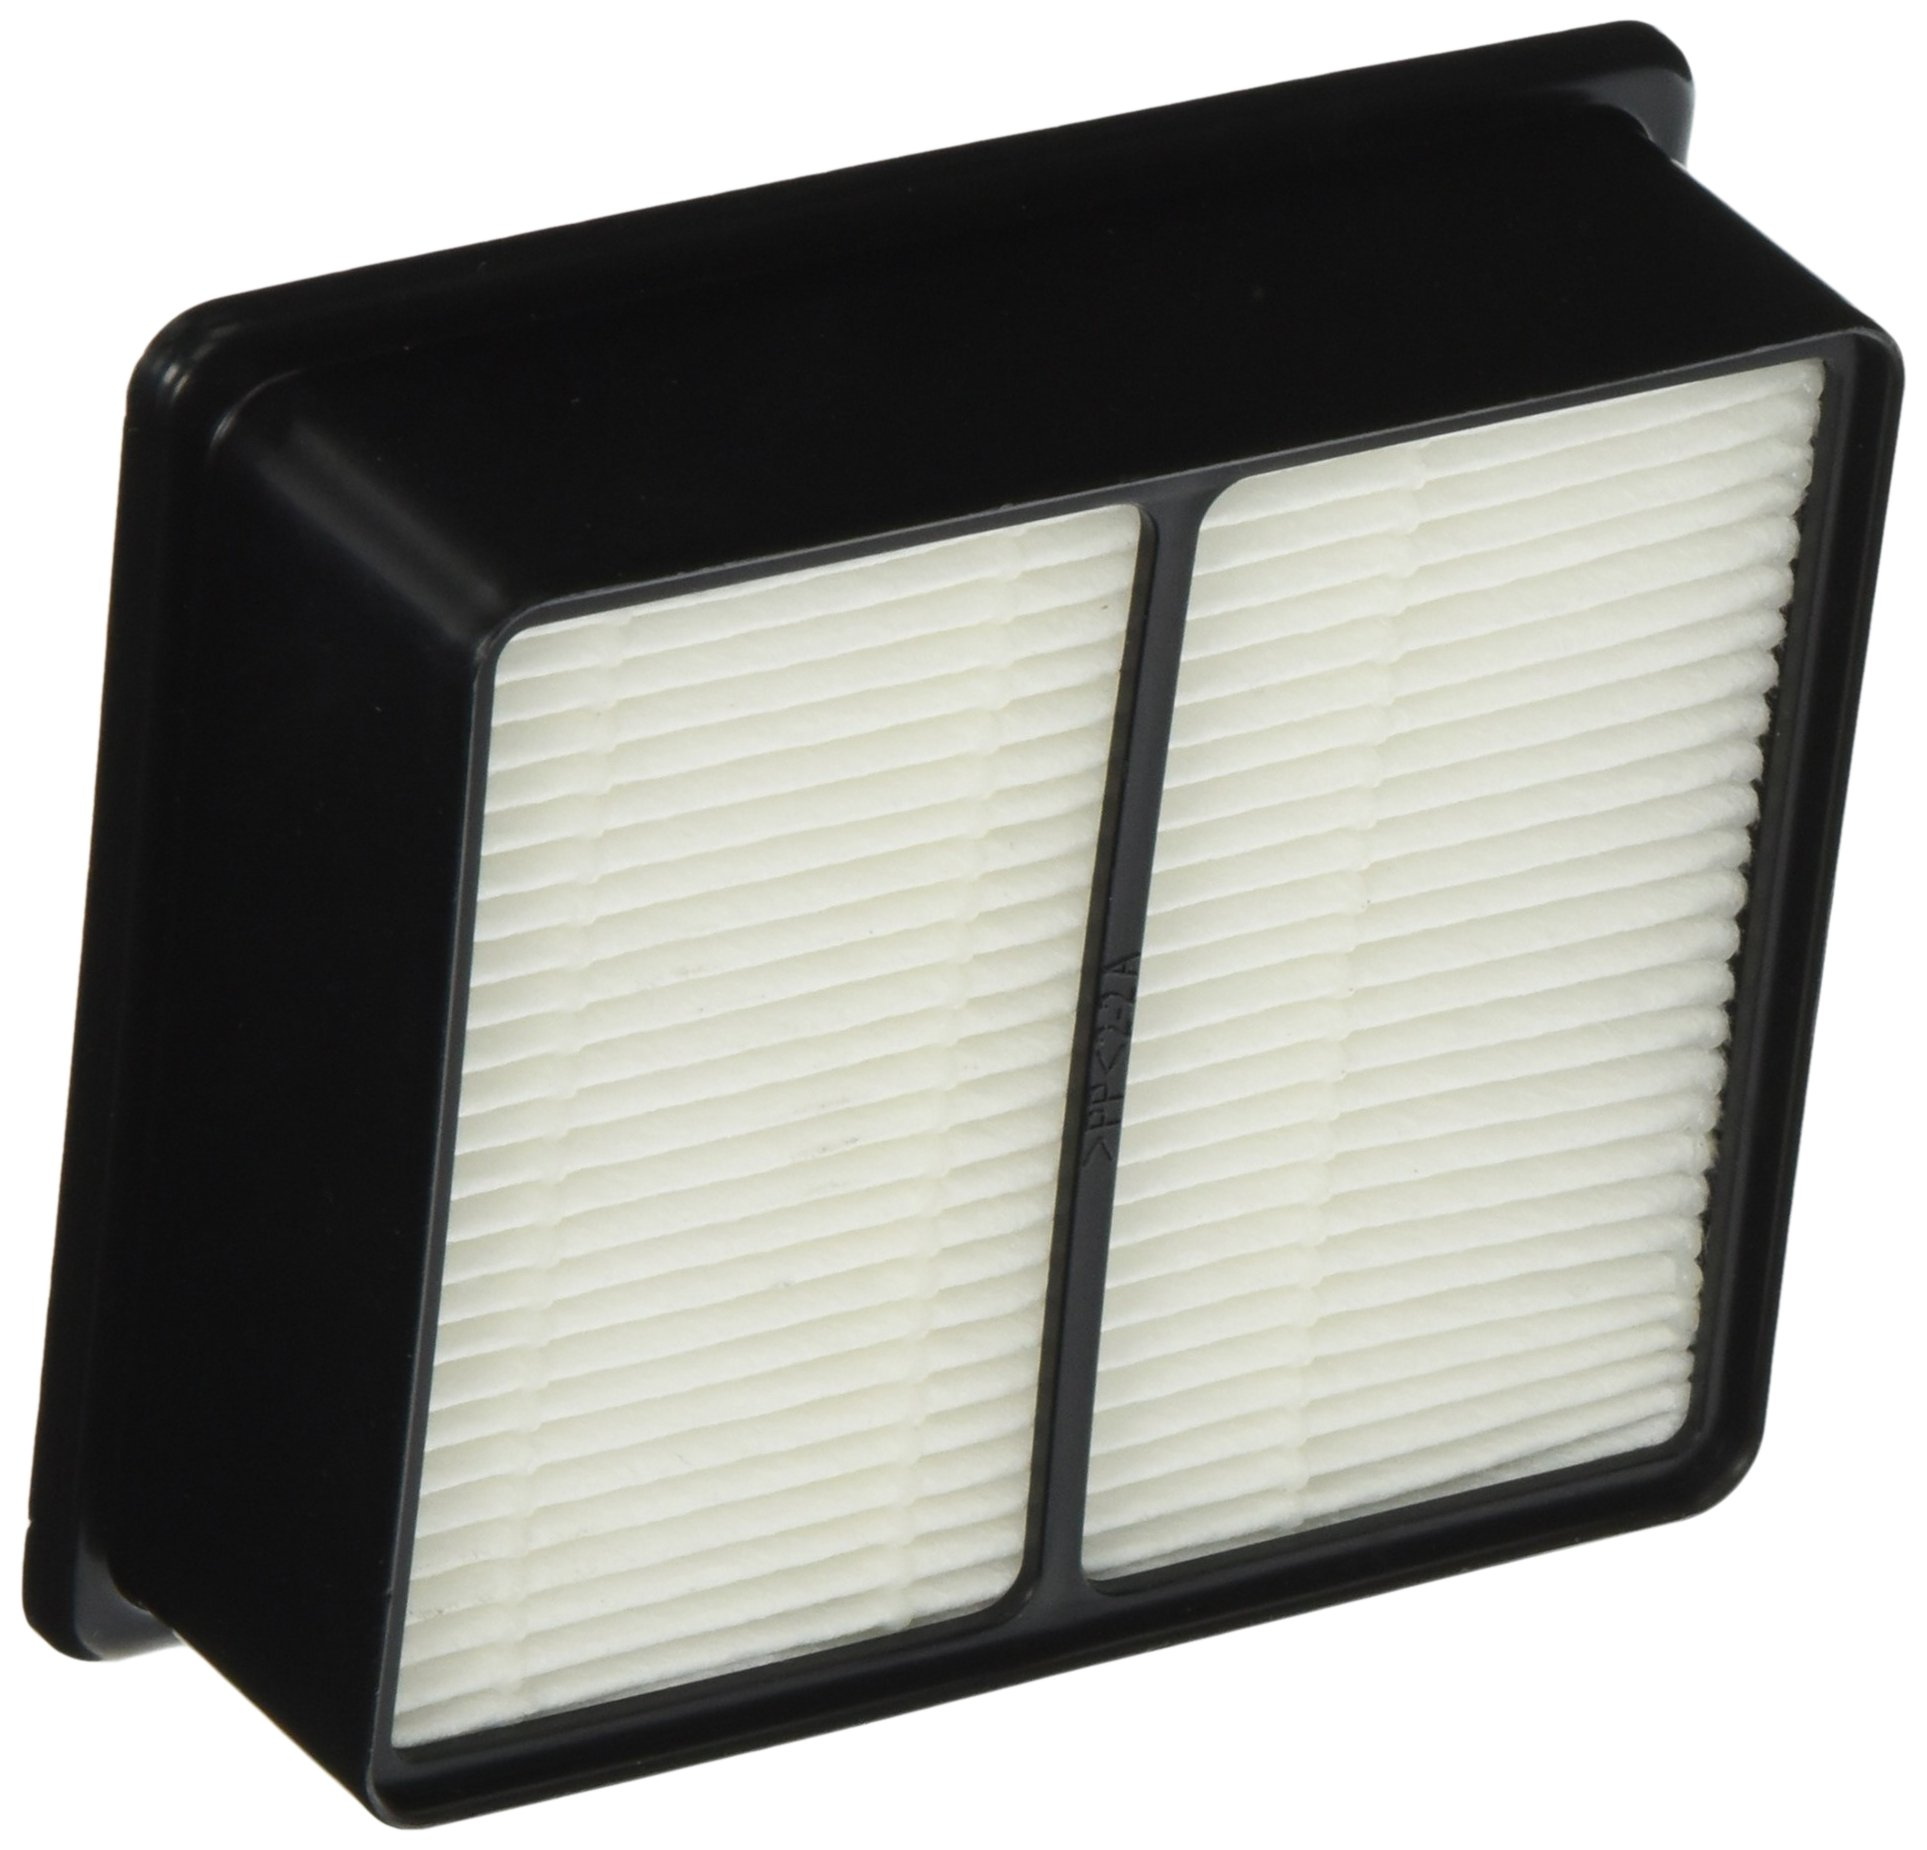 Filter, Above Motor Quick Power F71 Ud70115 W/Frm